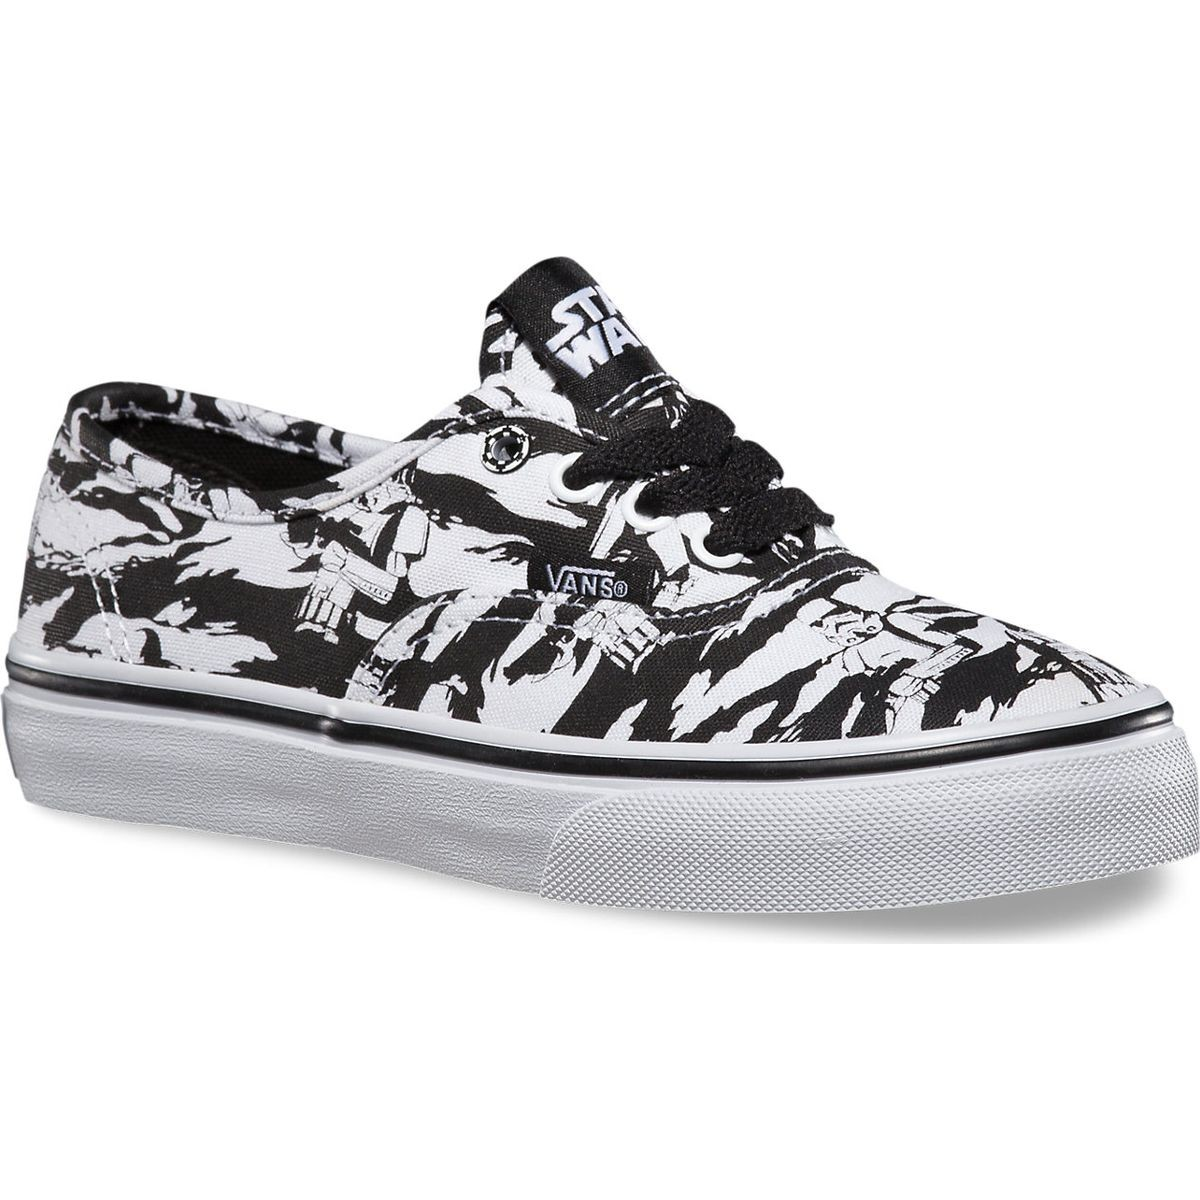 a3bb12a79a Vans Star Wars Authentic Youth Shoes